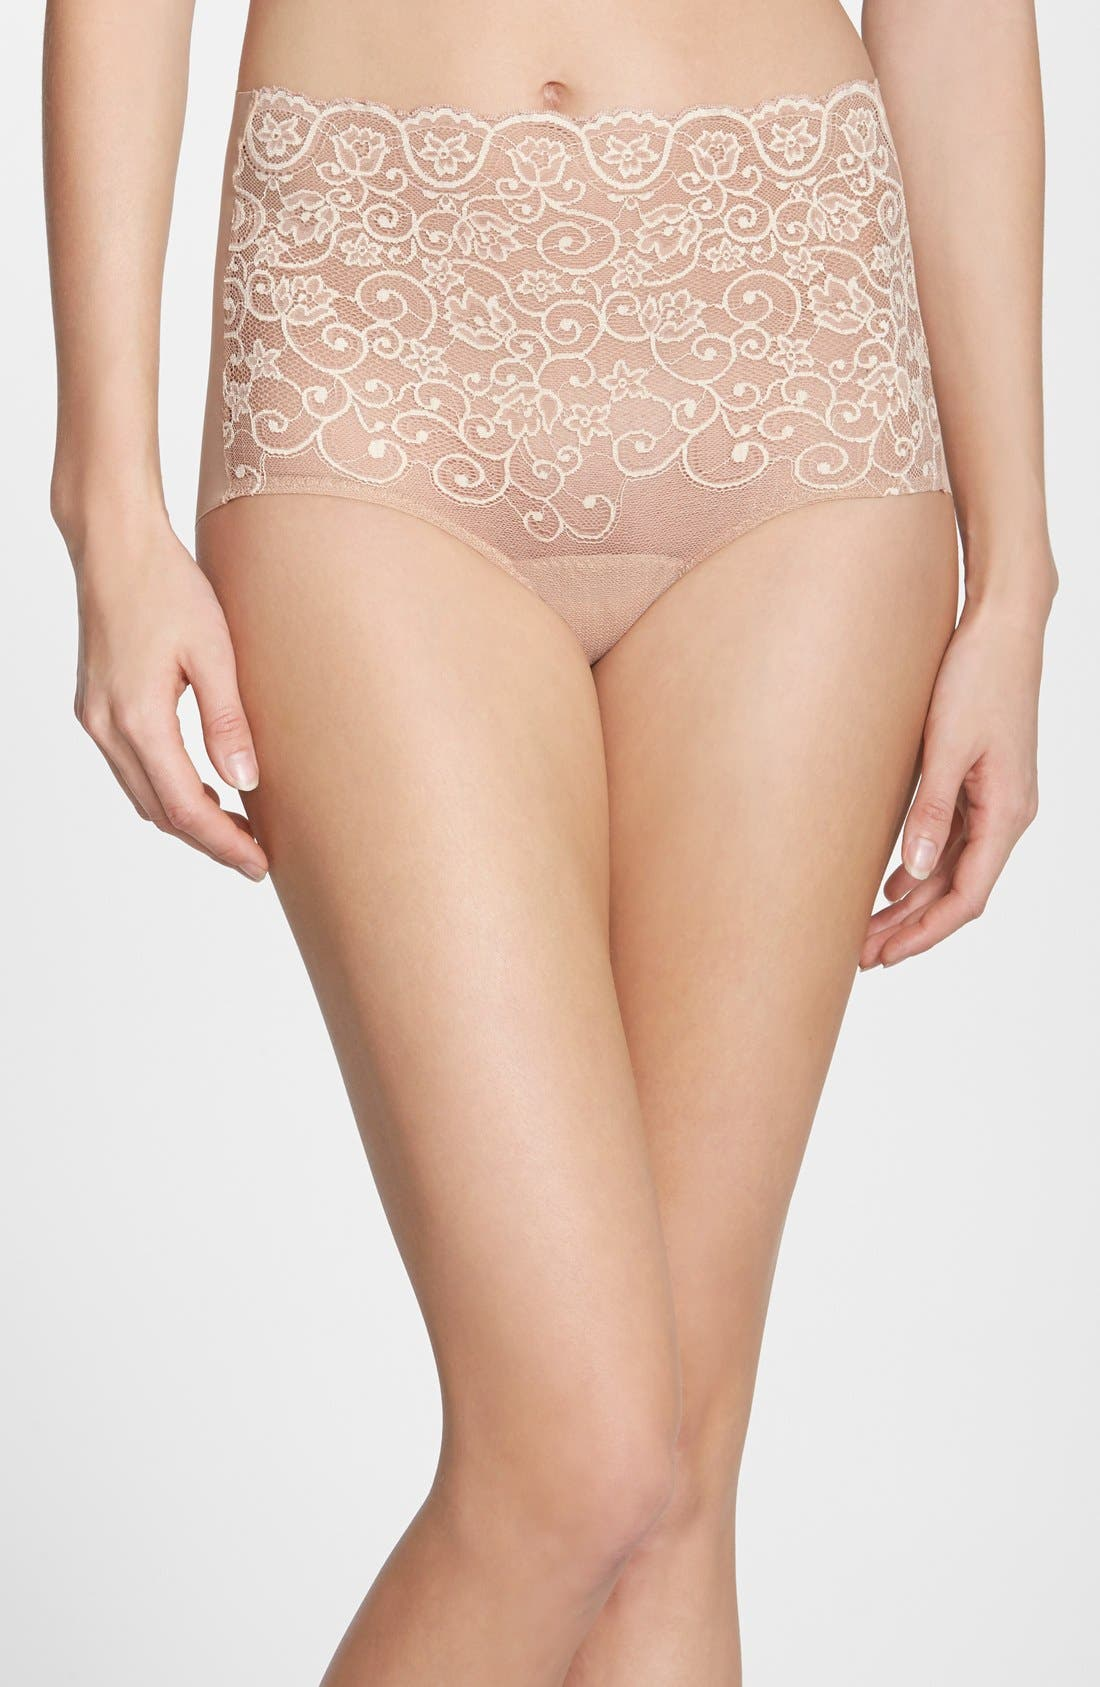 'Double Take' Lace Front High Rise Panties,                             Main thumbnail 1, color,                             Ivory/ Beige